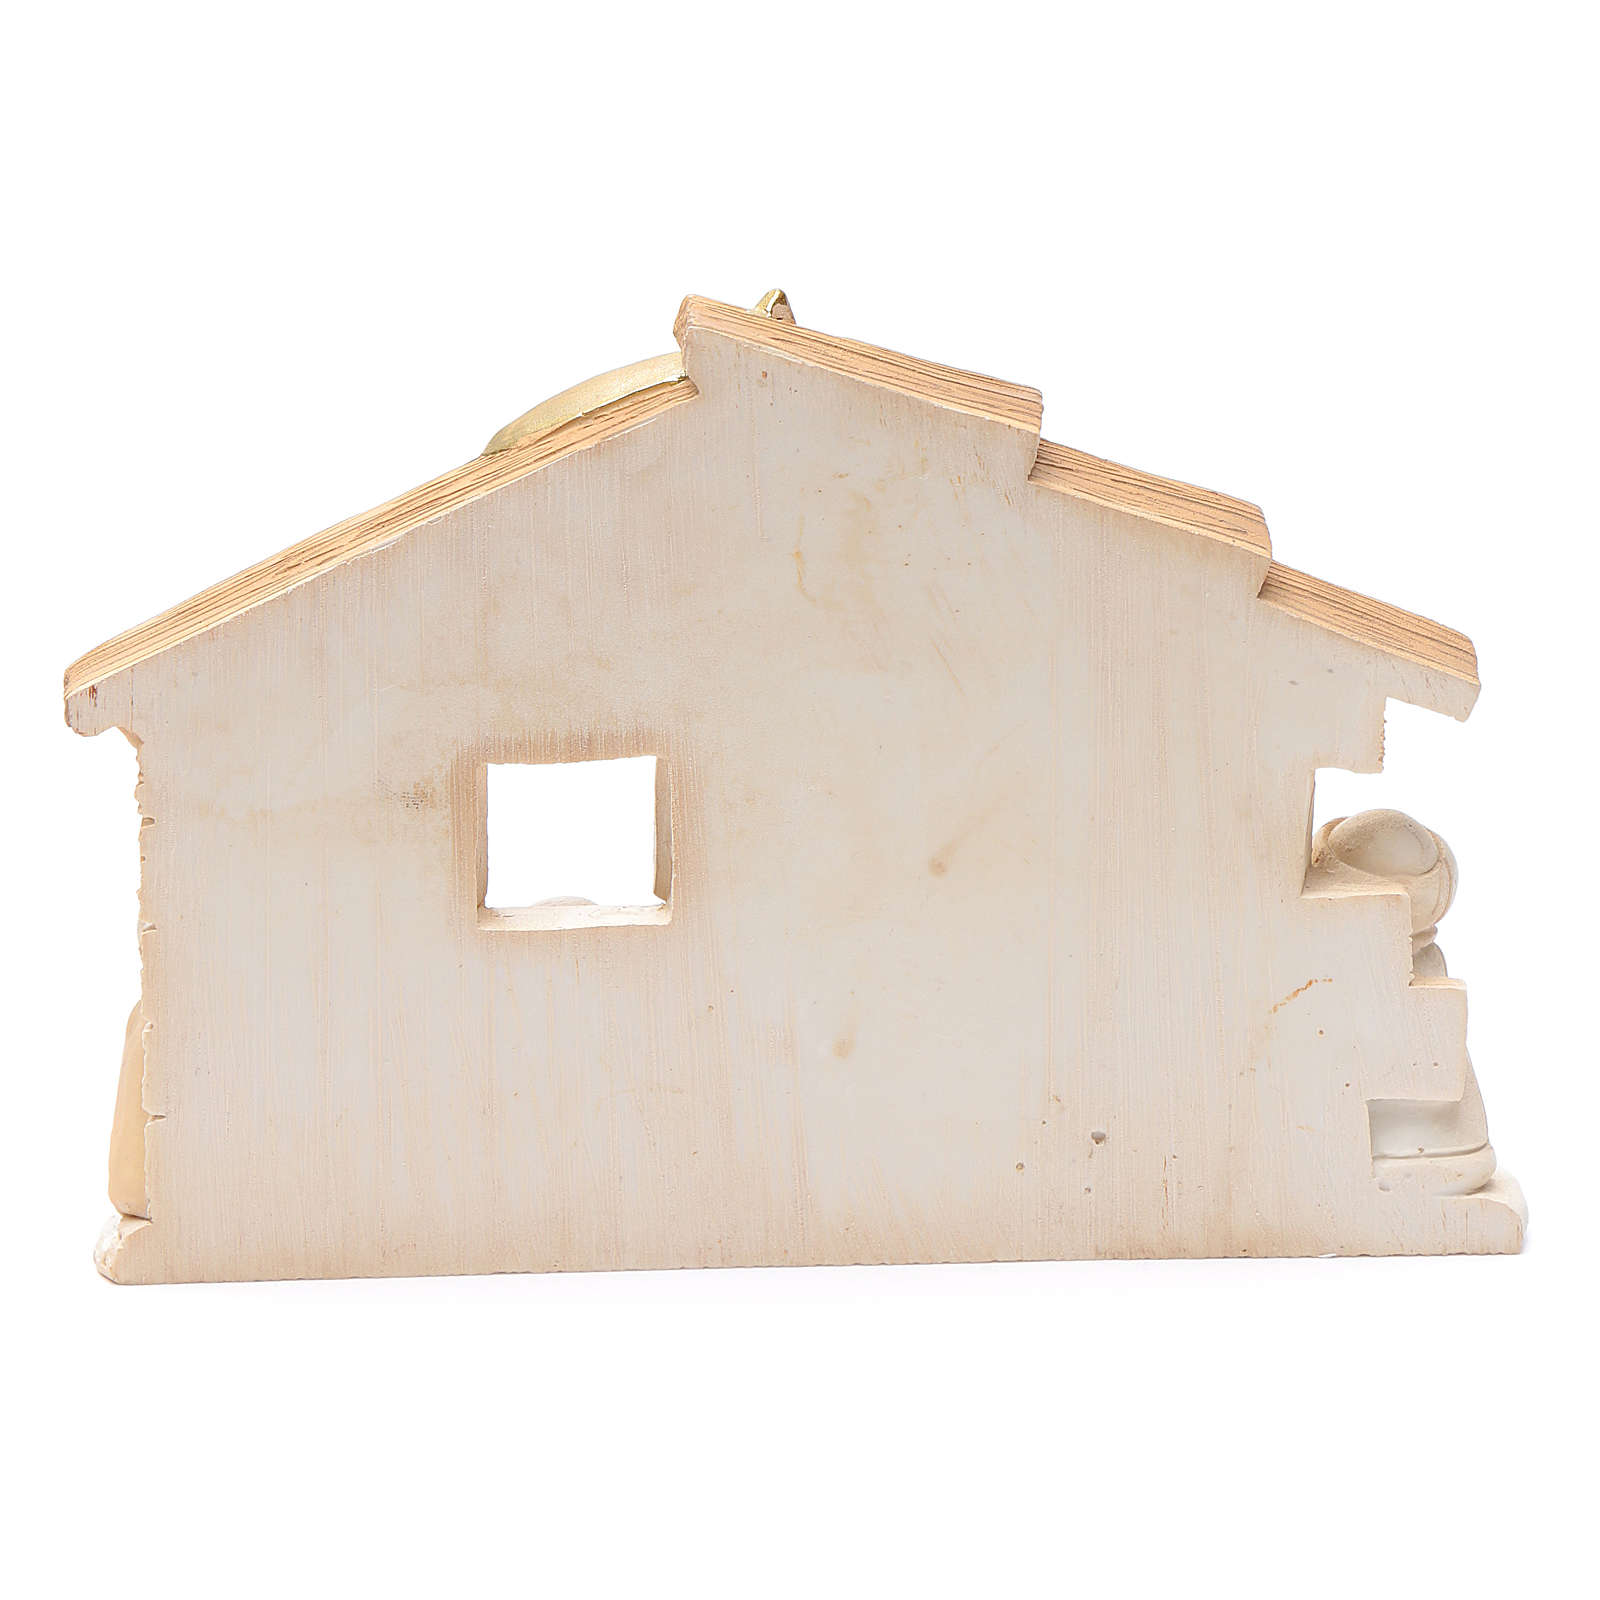 Resin hut for nativity scene 10x15 cm 4